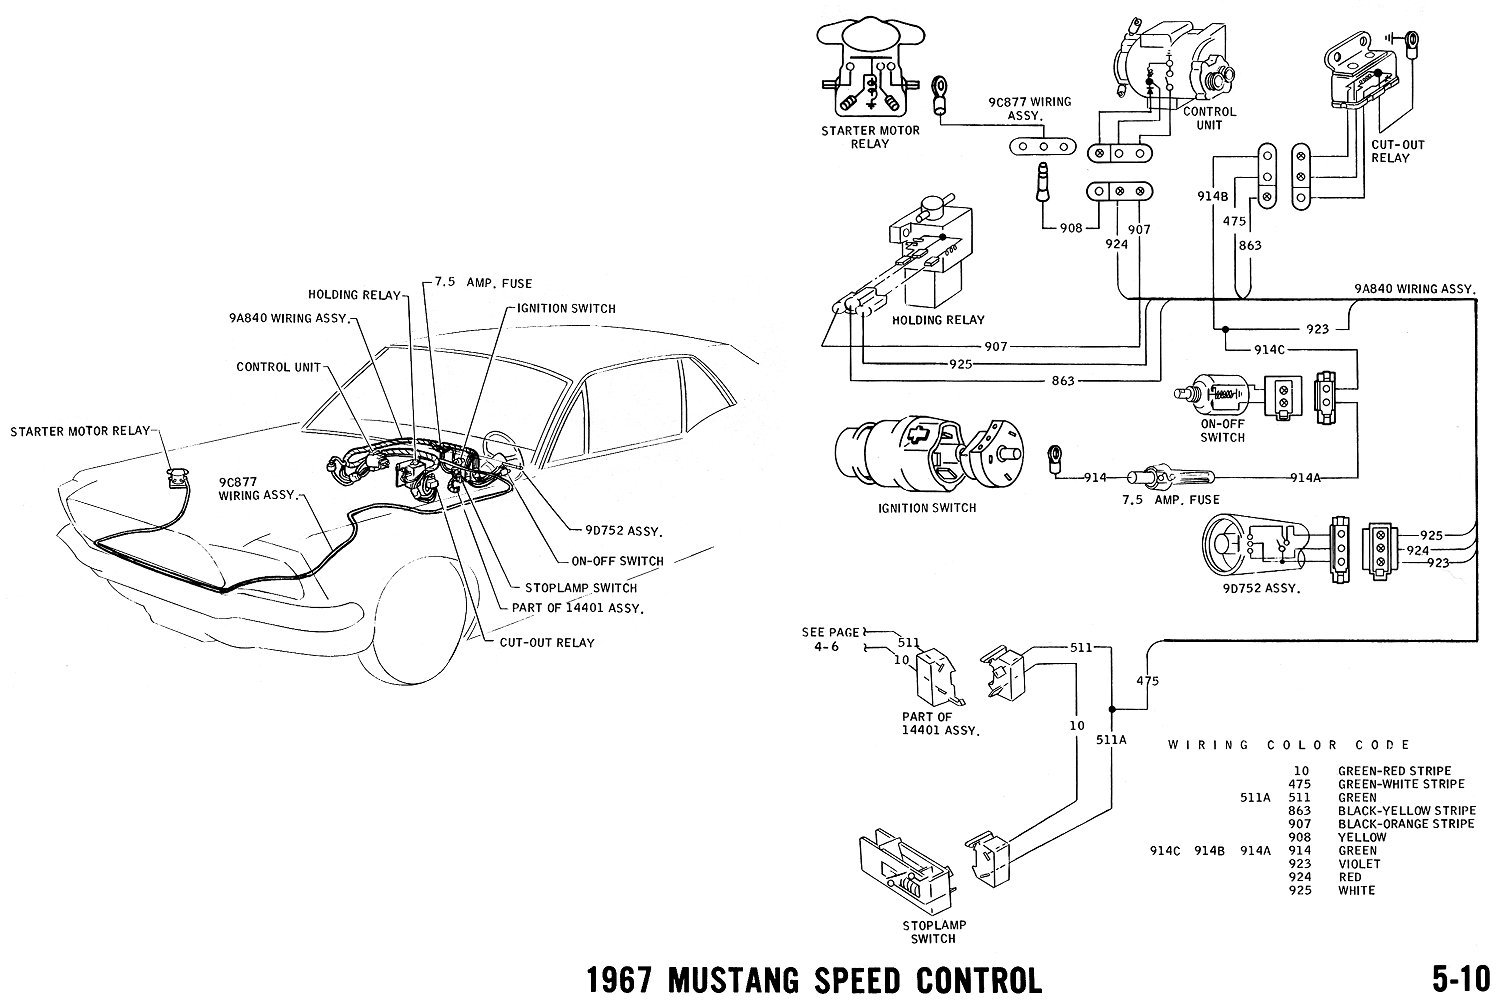 hight resolution of 1967 mustang wiring and vacuum diagrams average joe restoration 1967 mustang steering column wiring diagram